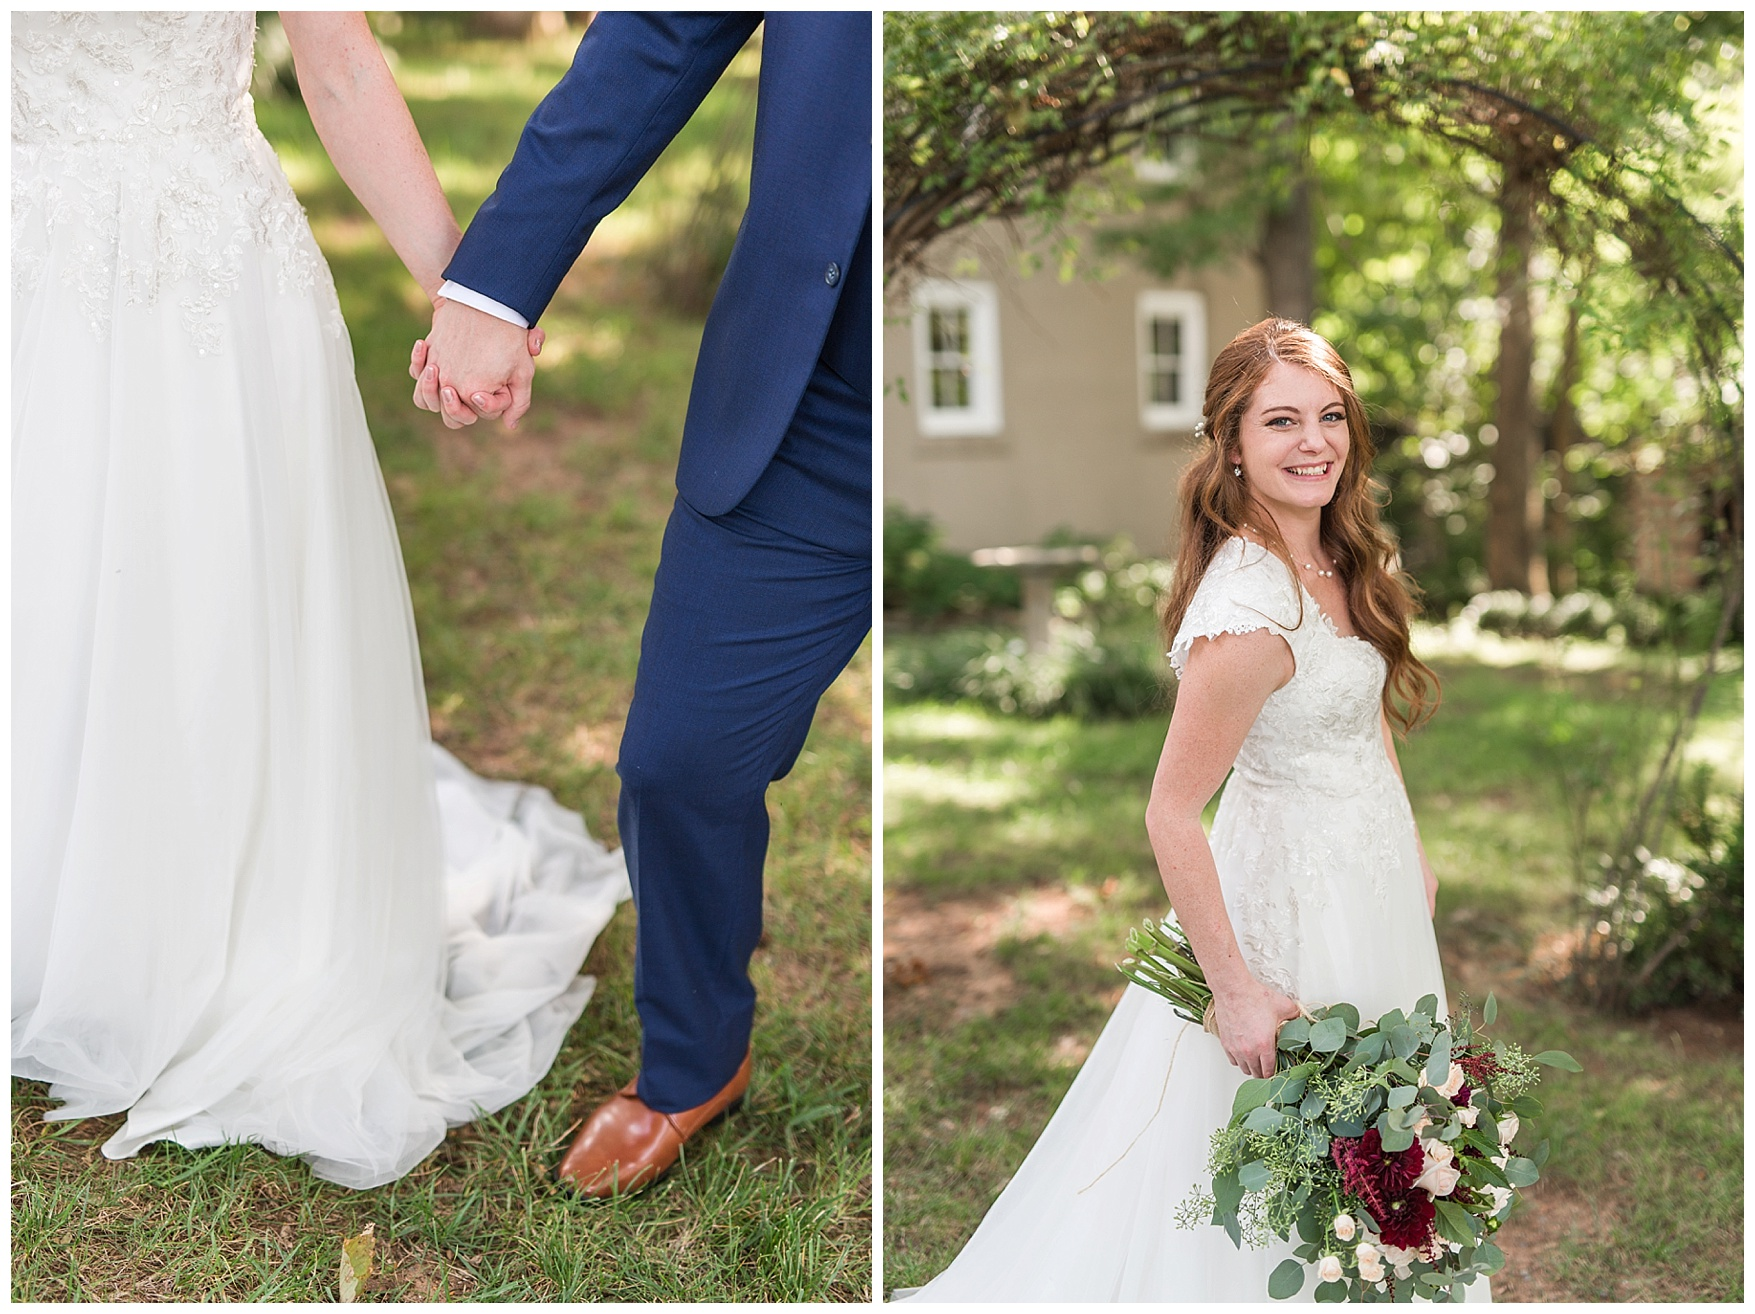 Murray Hill Wedding in Leesburg, Virginia || Leesburg Virginia Wedding Photographer || Ashley Eiban Photography